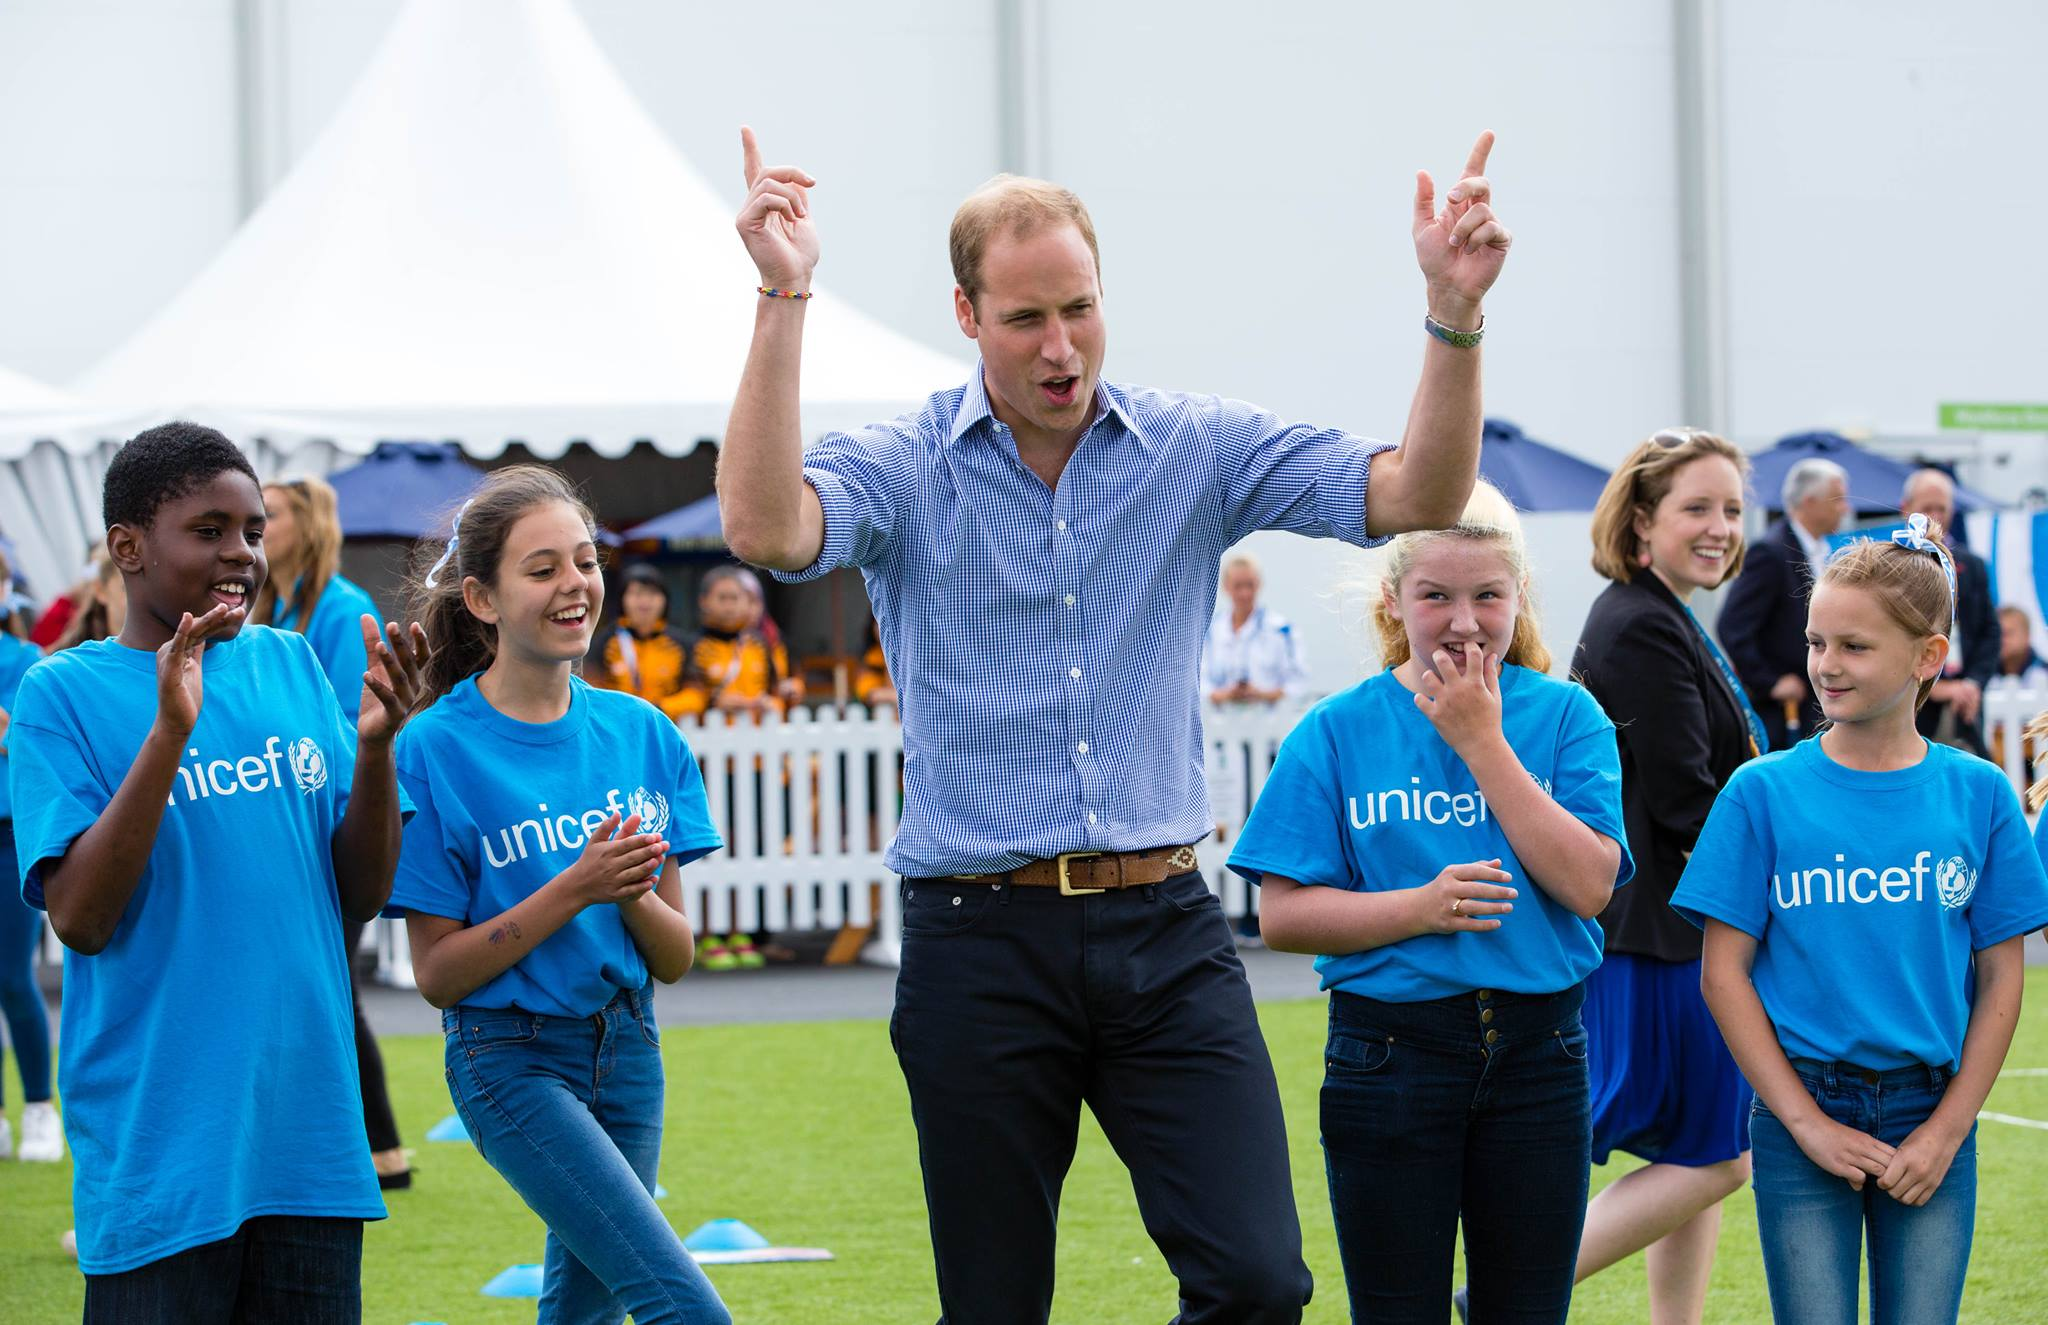 UNICEF UK Facebook